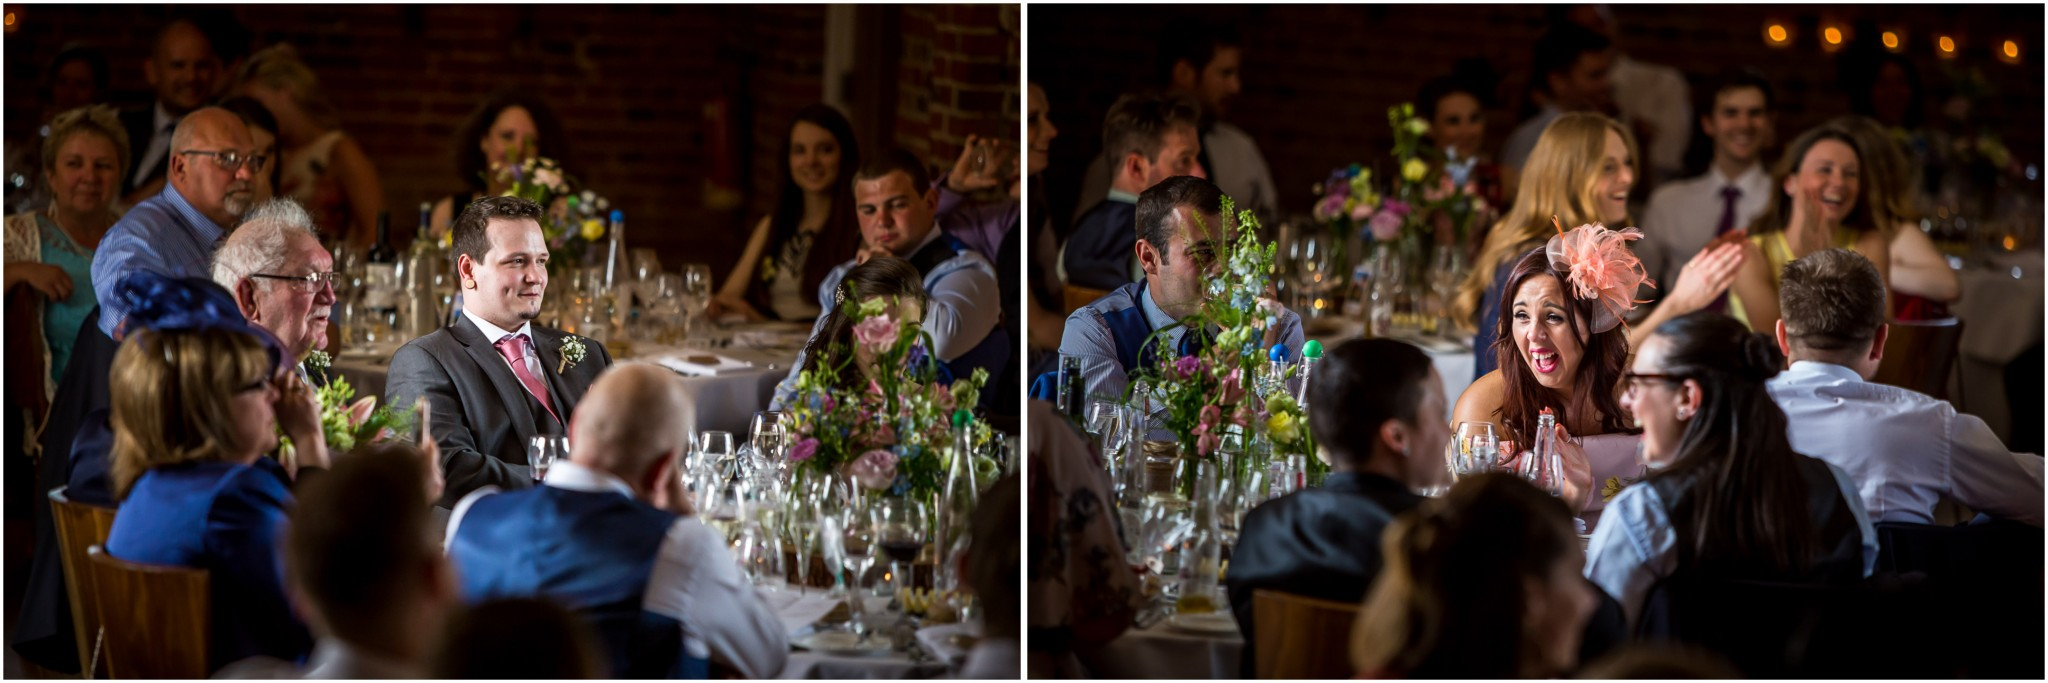 Wasing Park Wedding Photography guests laughing at speeches